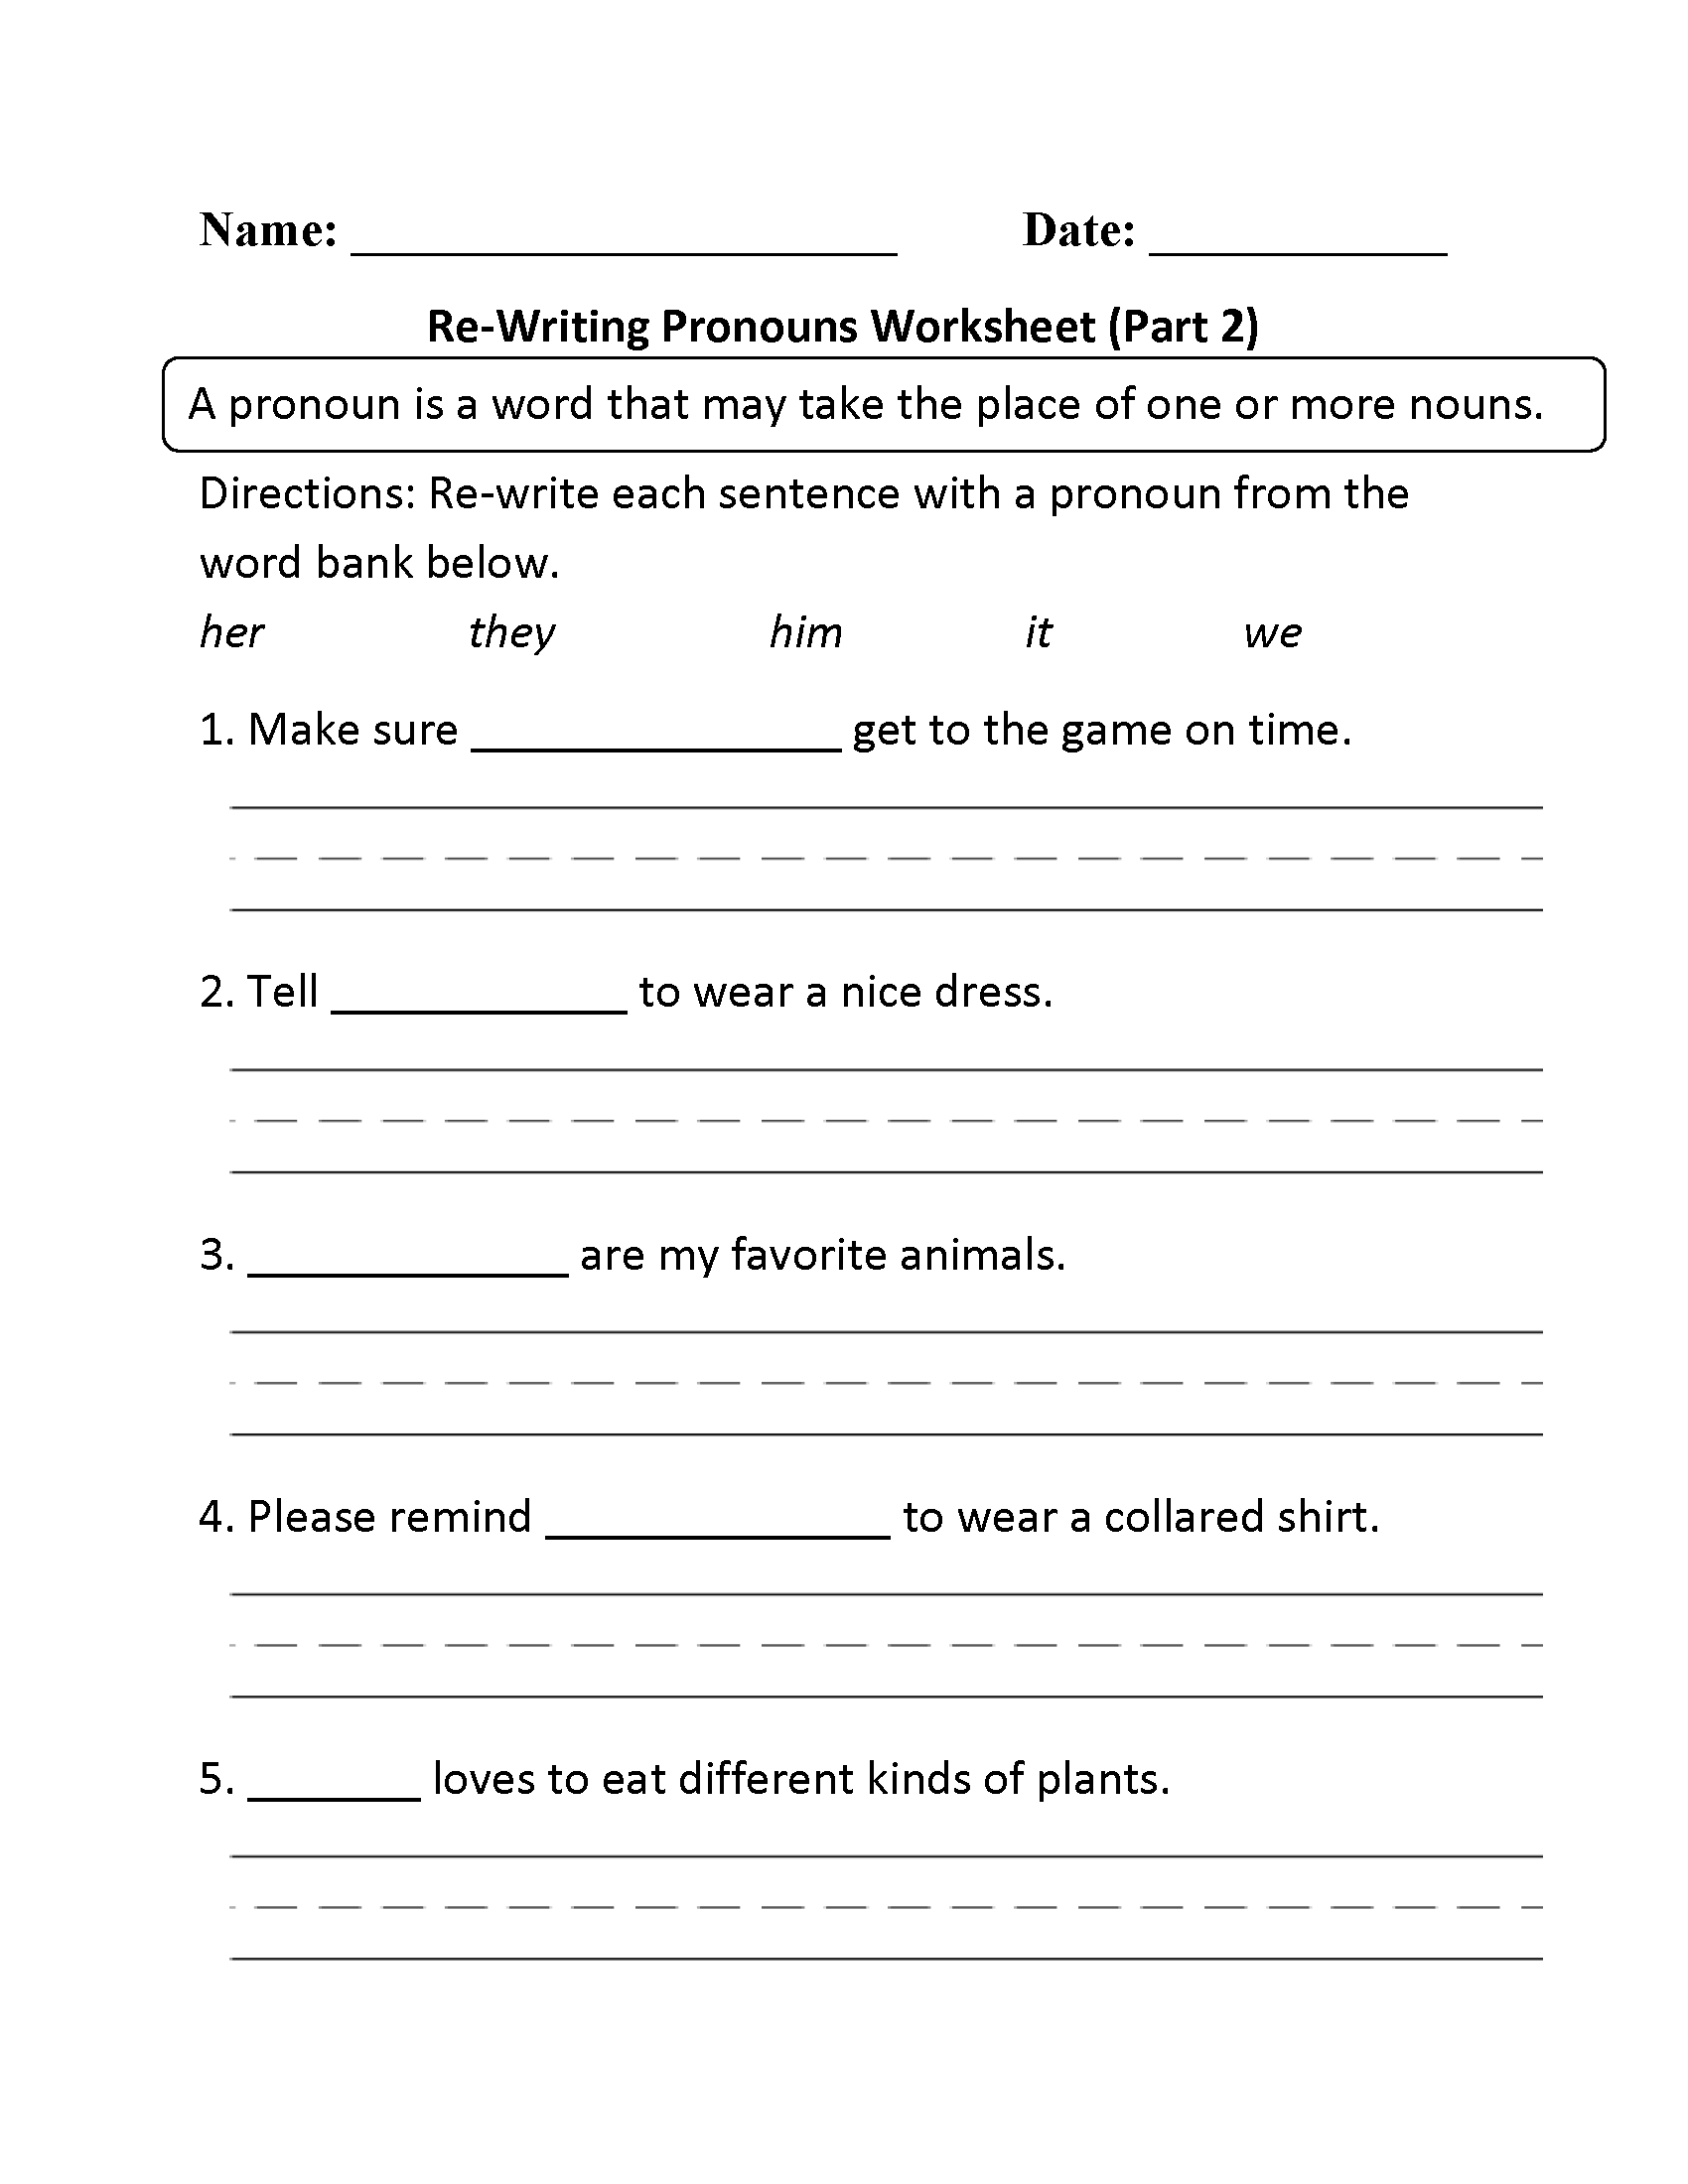 Pronouns Worksheets – Nouns and Pronouns Worksheet